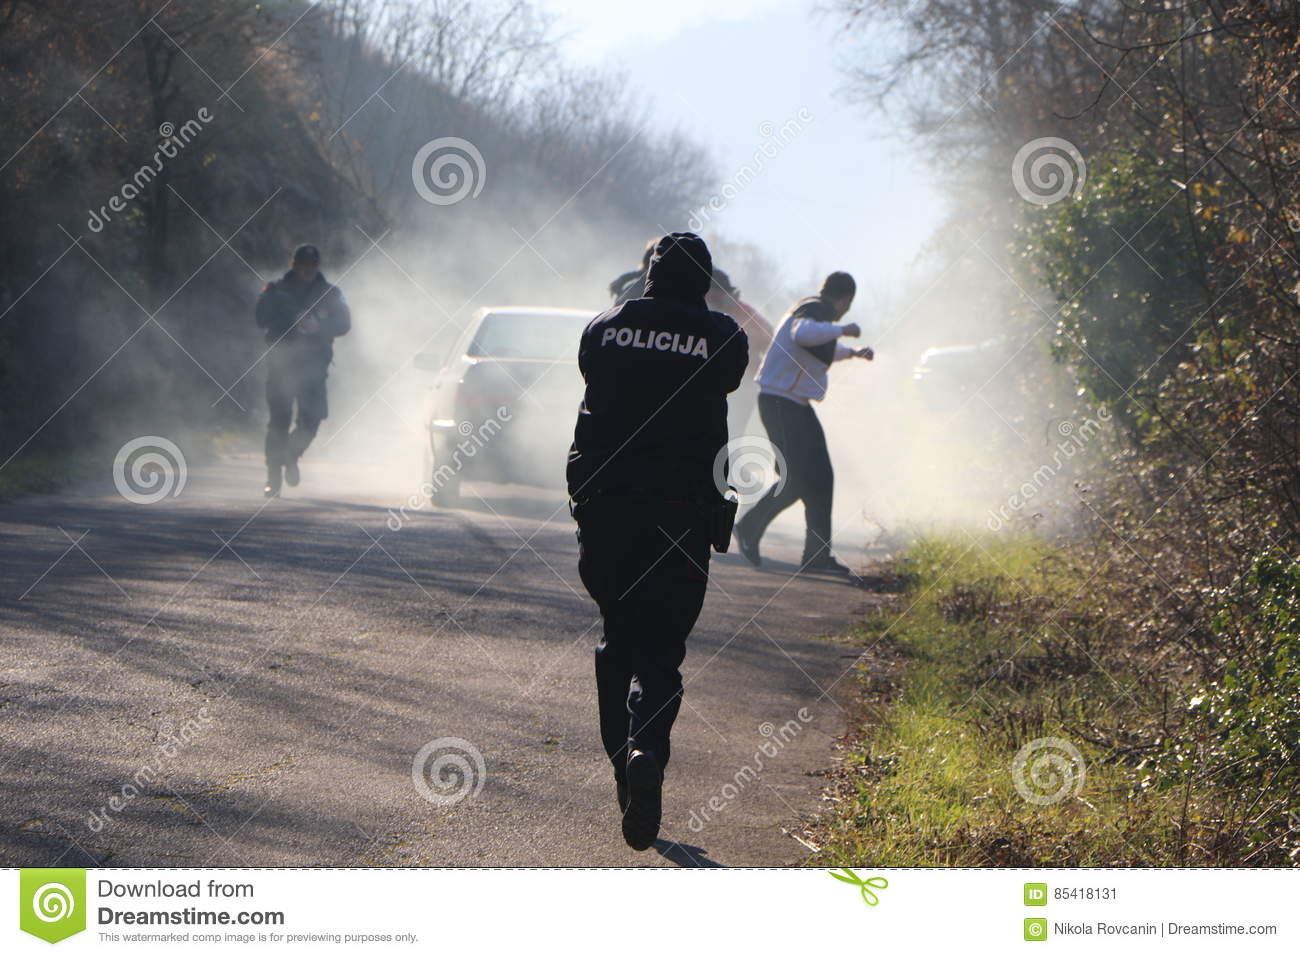 Police officer in action